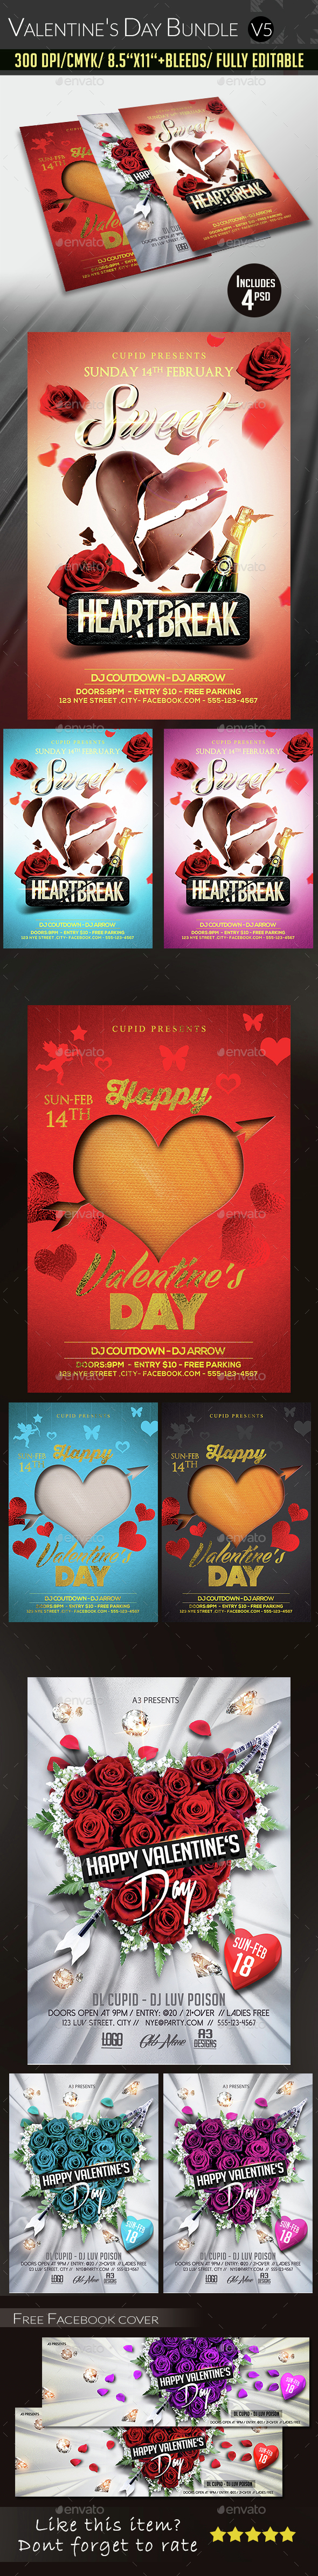 Valentine's Day Flyer Bundle v5 - Clubs & Parties Events